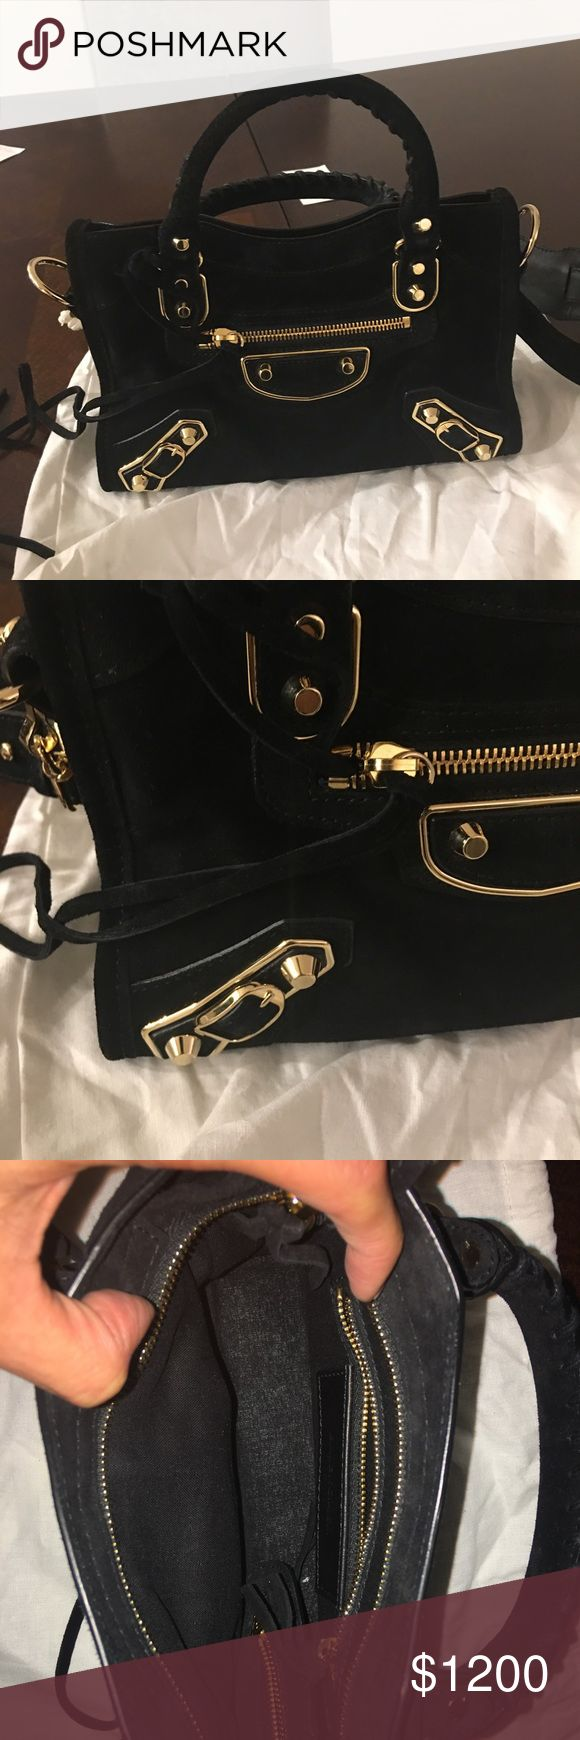 New authentic Balenciaga mini city bag New authentic Balenciaga metallic edge mini city bag. Calf suede. Removable shoulder strap. Gold hardware. Comes with tags and dust bag. Can be worn as satchel, crossbody or shoulder.m bag. Balenciaga Bags Crossbody Bags